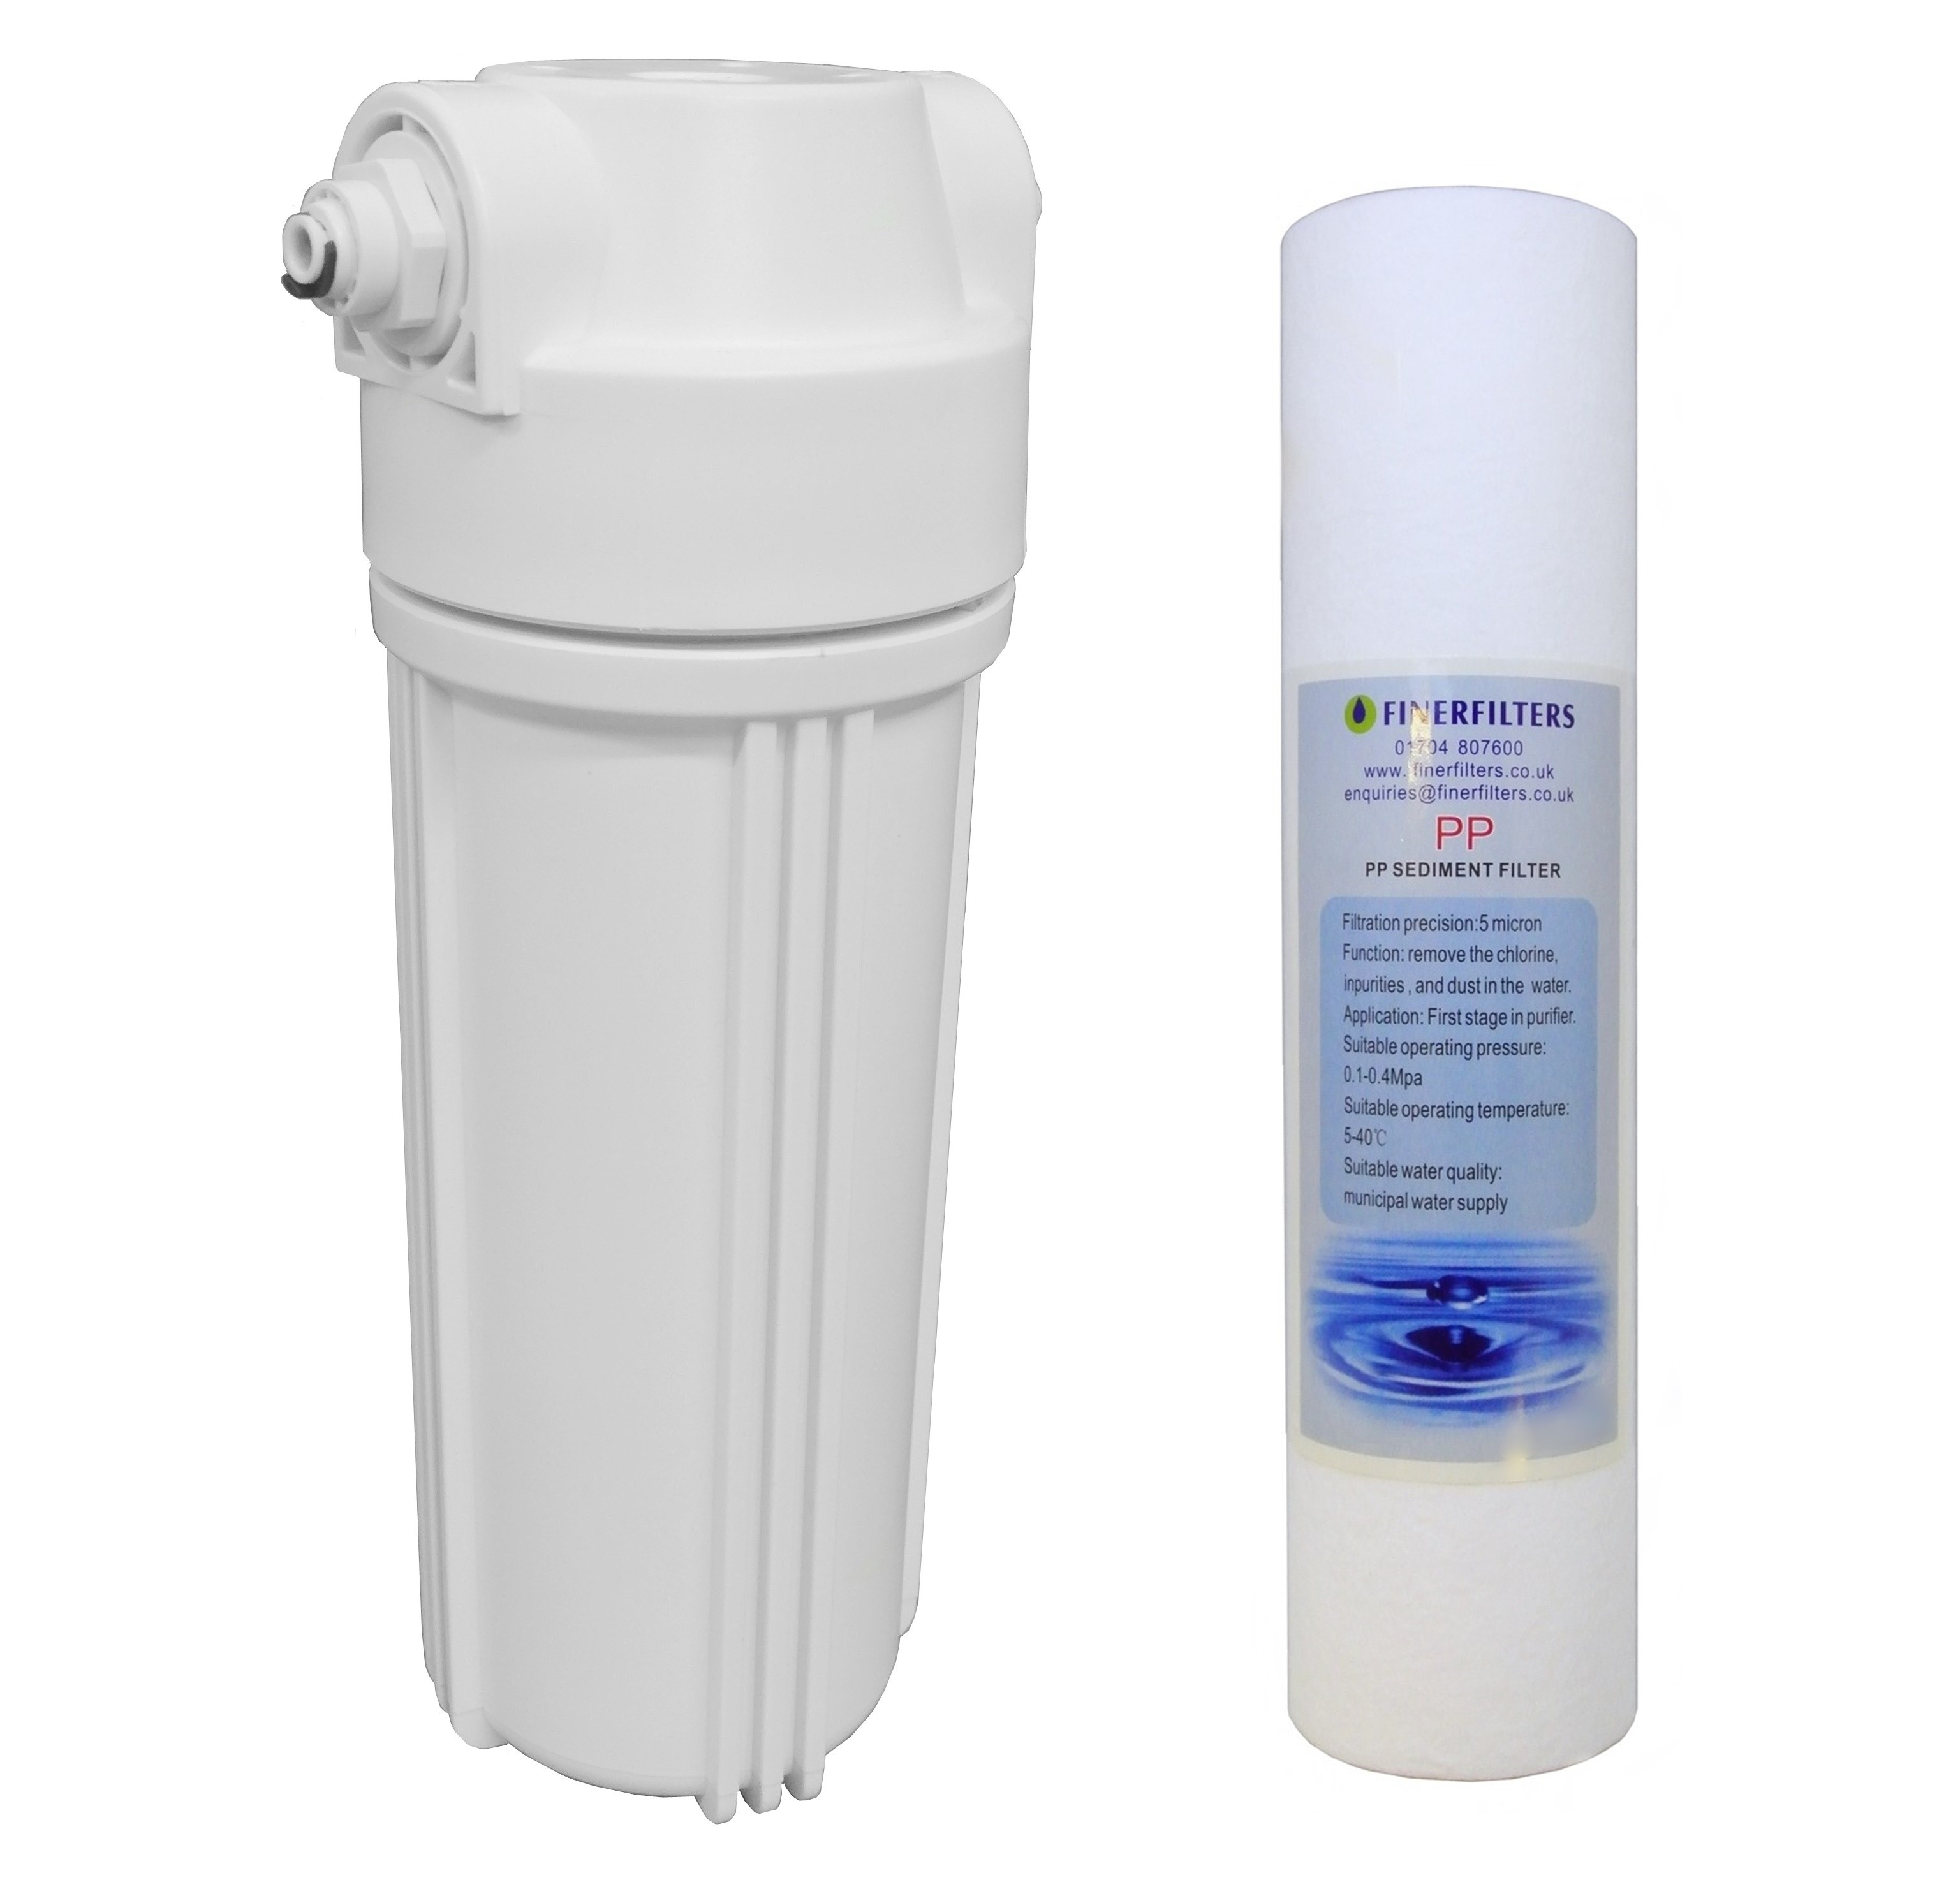 """10"""" Standard Clear Filter Housing with 1/2"""" Female ports (Fittings incl for ¼"""" PF) and Sediment Filter"""